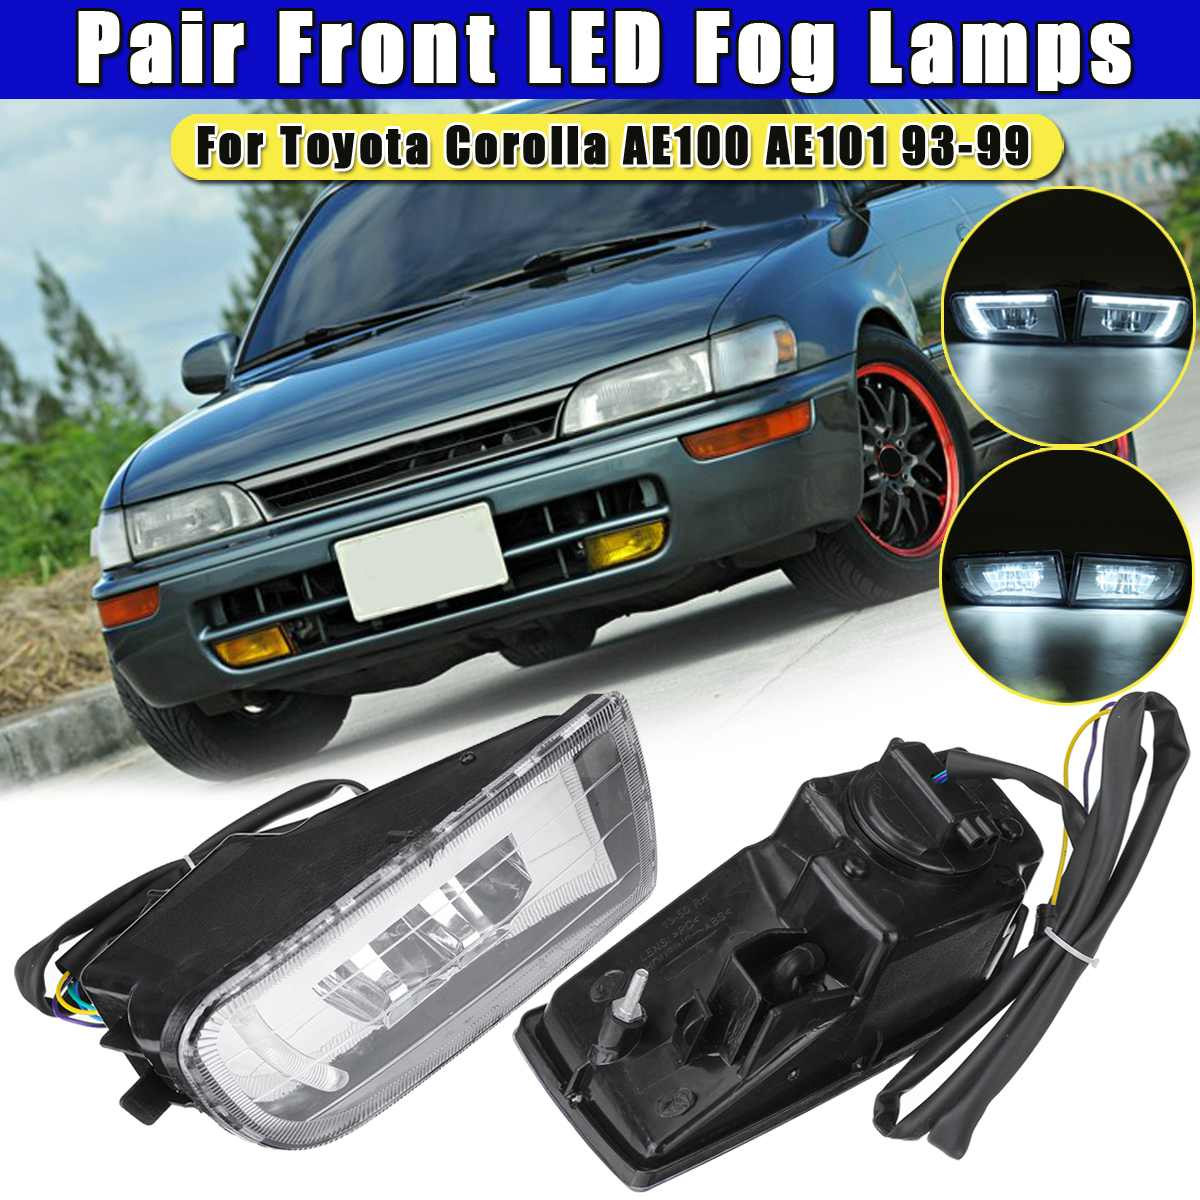 Pair Super Bright Fog Light For <font><b>toyota</b></font> <font><b>Corolla</b></font> AE100 <font><b>AE101</b></font> 1993 1994 1995 1996 1997 1998 1999 Led Fog Lights Fog Lamp Assembly image